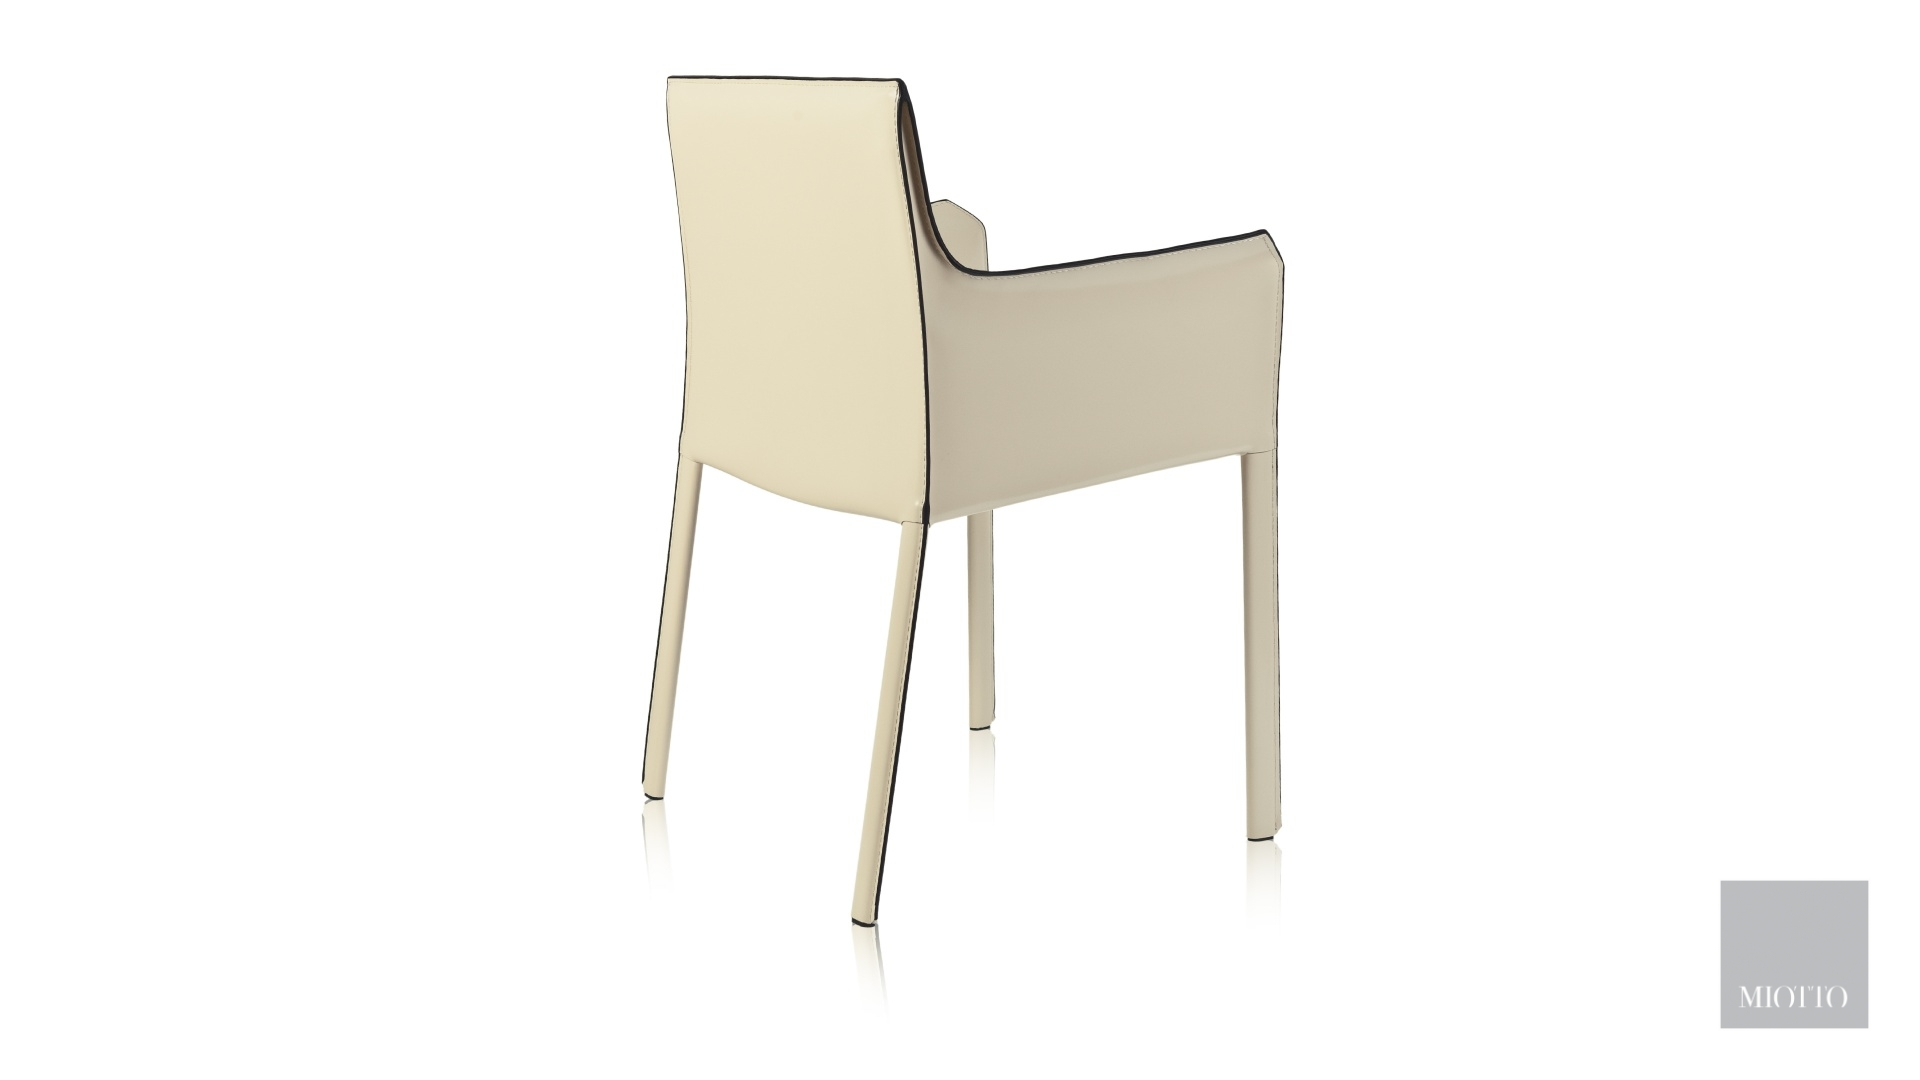 miotto_Ardini arm dining chair beige back miotto furniture t